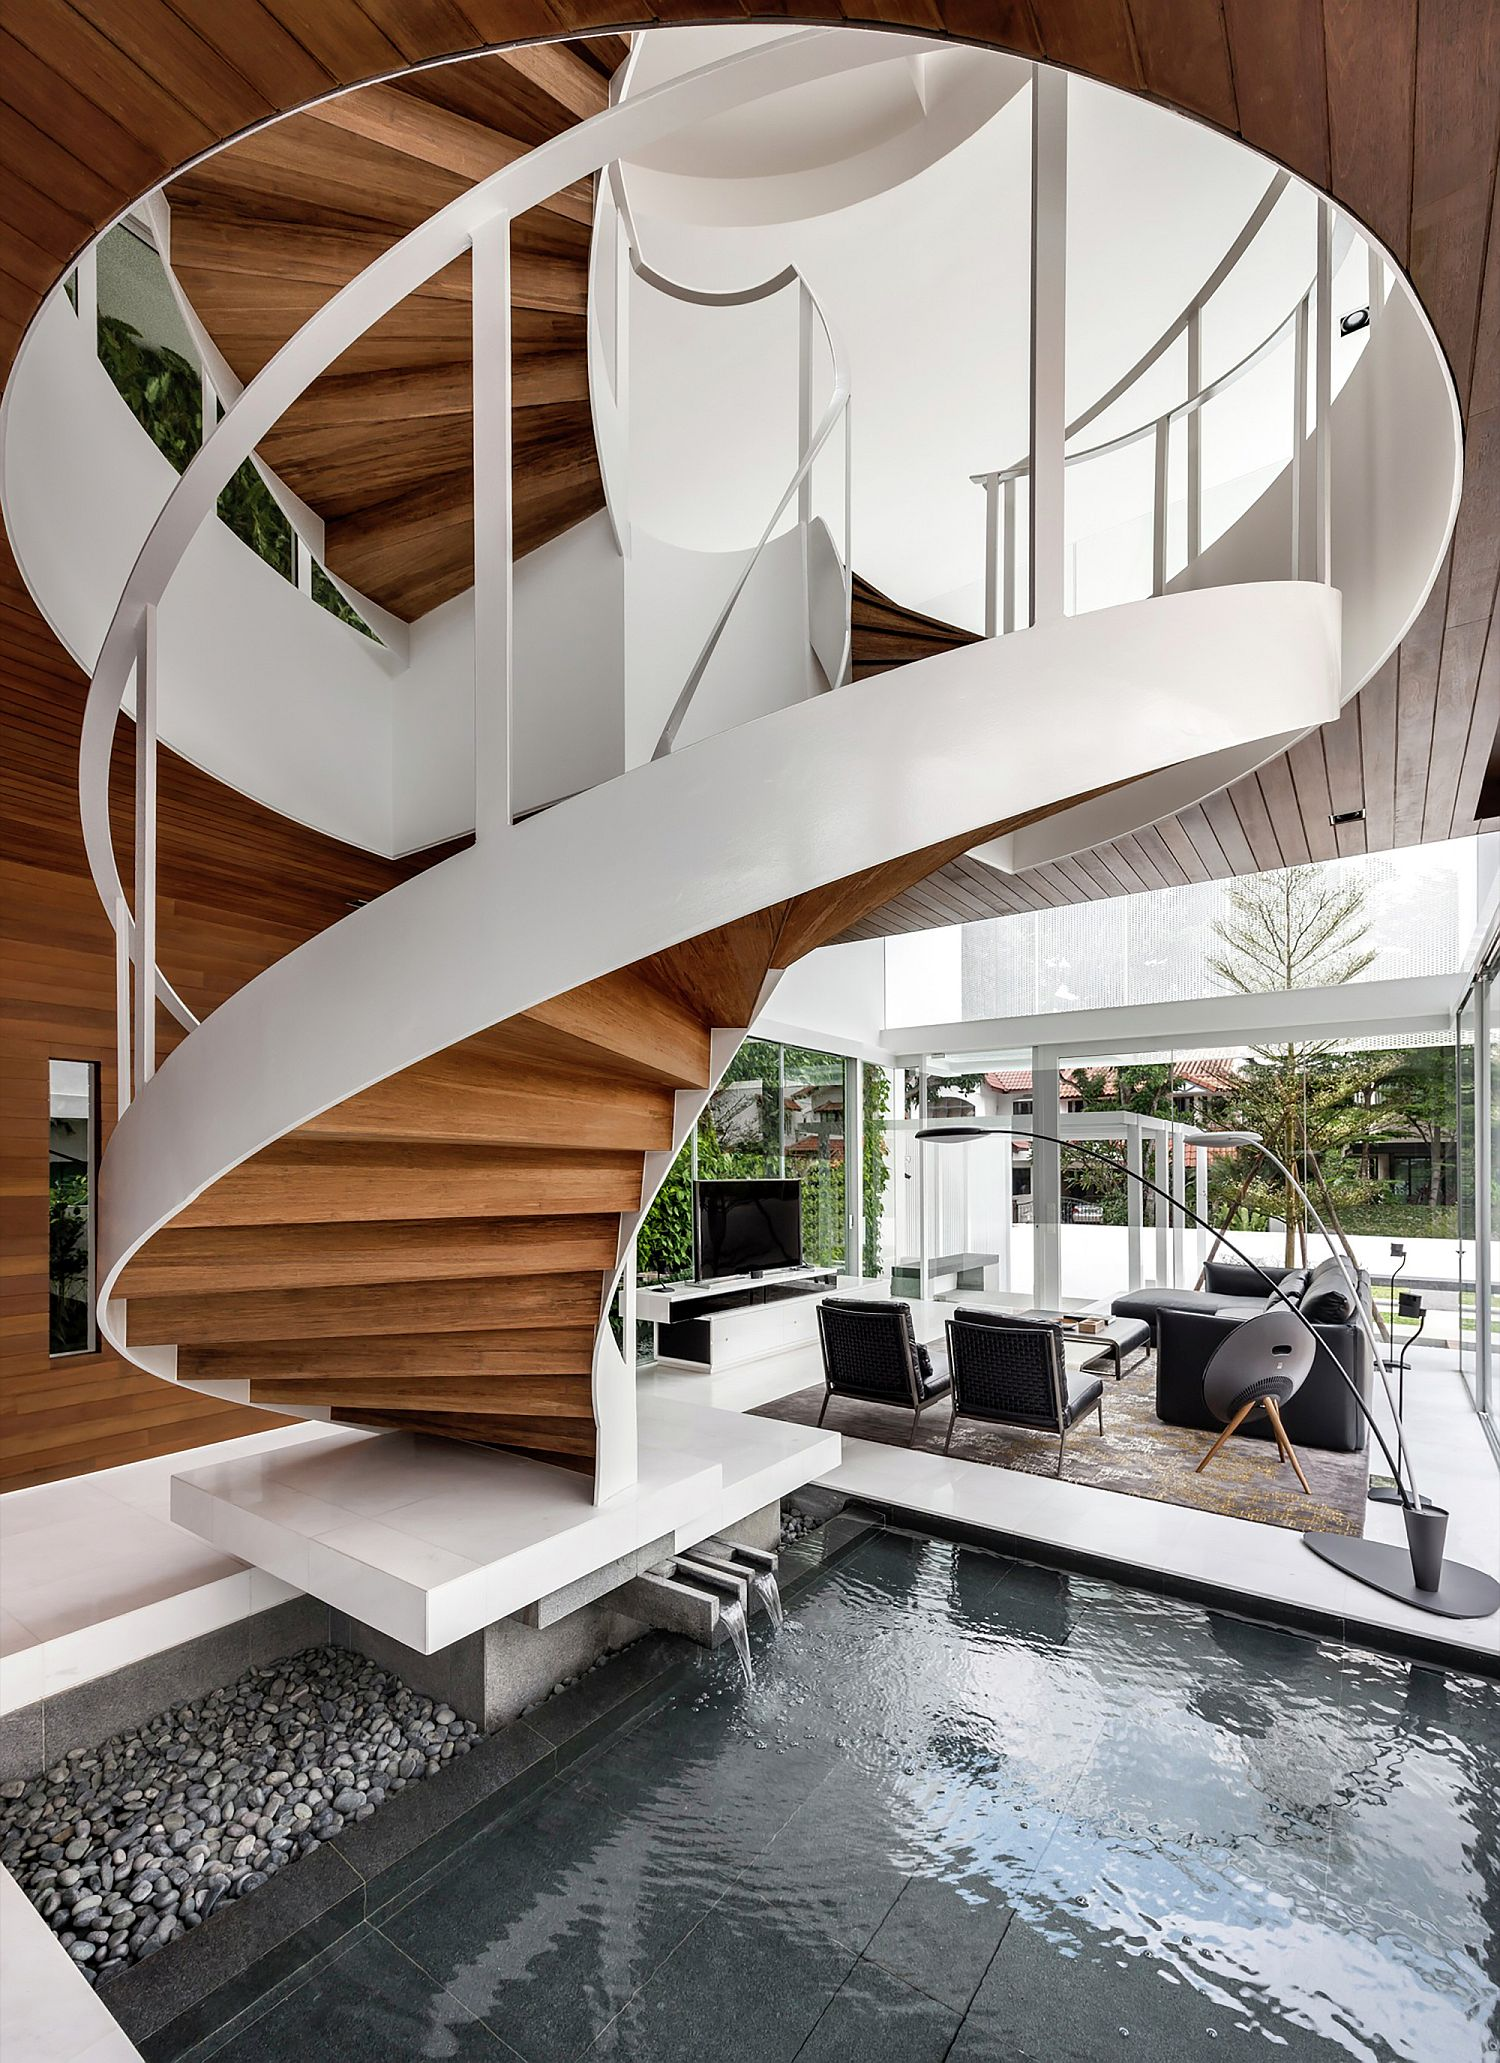 Stunning central spiral staircase and pool of the house